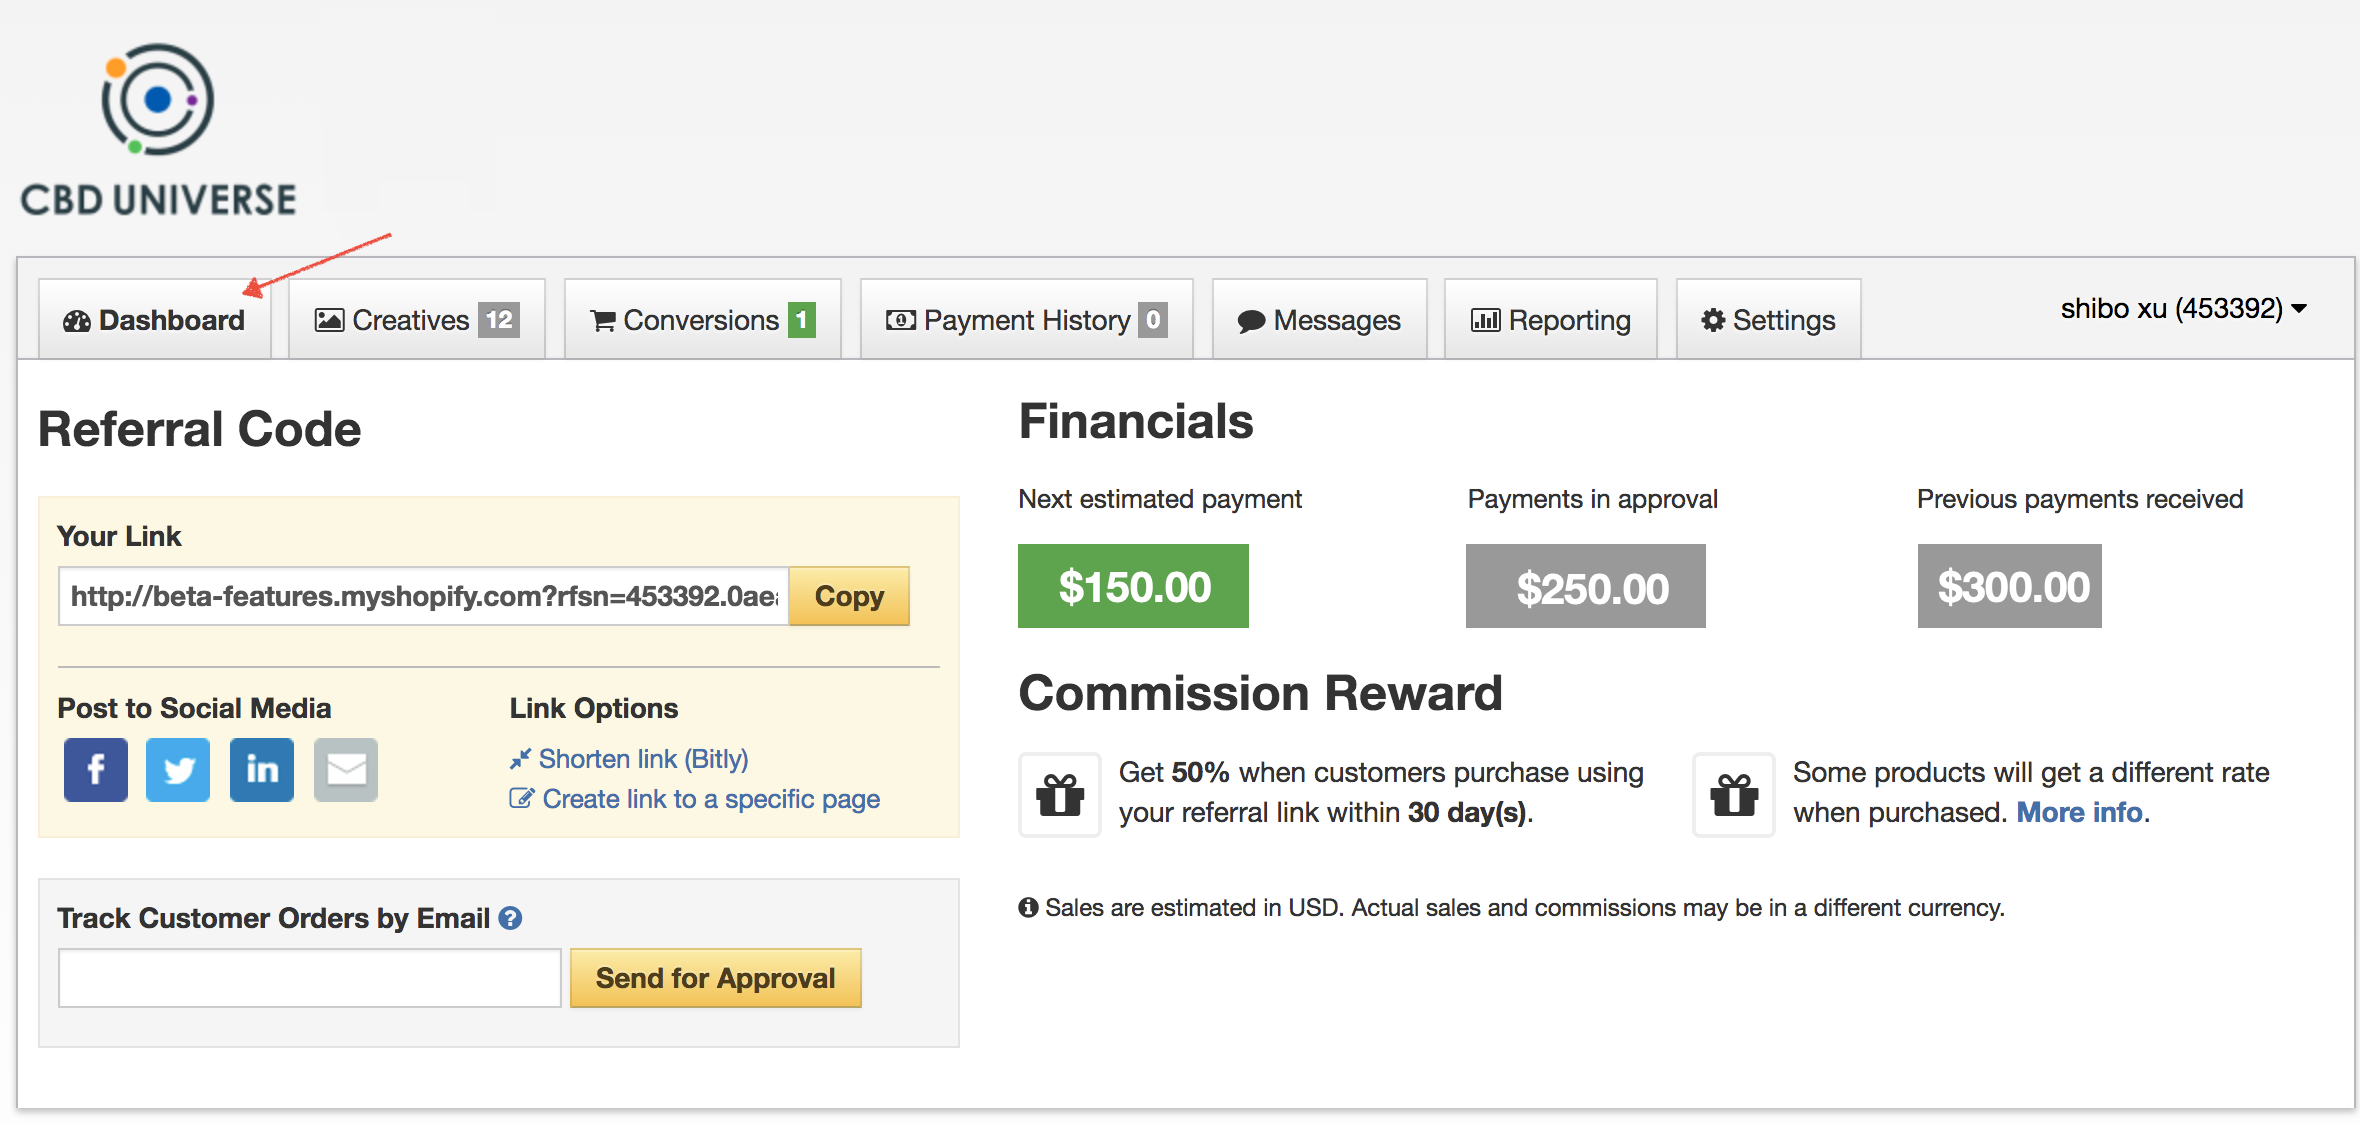 After you become a CBD Universe affiliate to make money on every referral, you will see this dashboard.